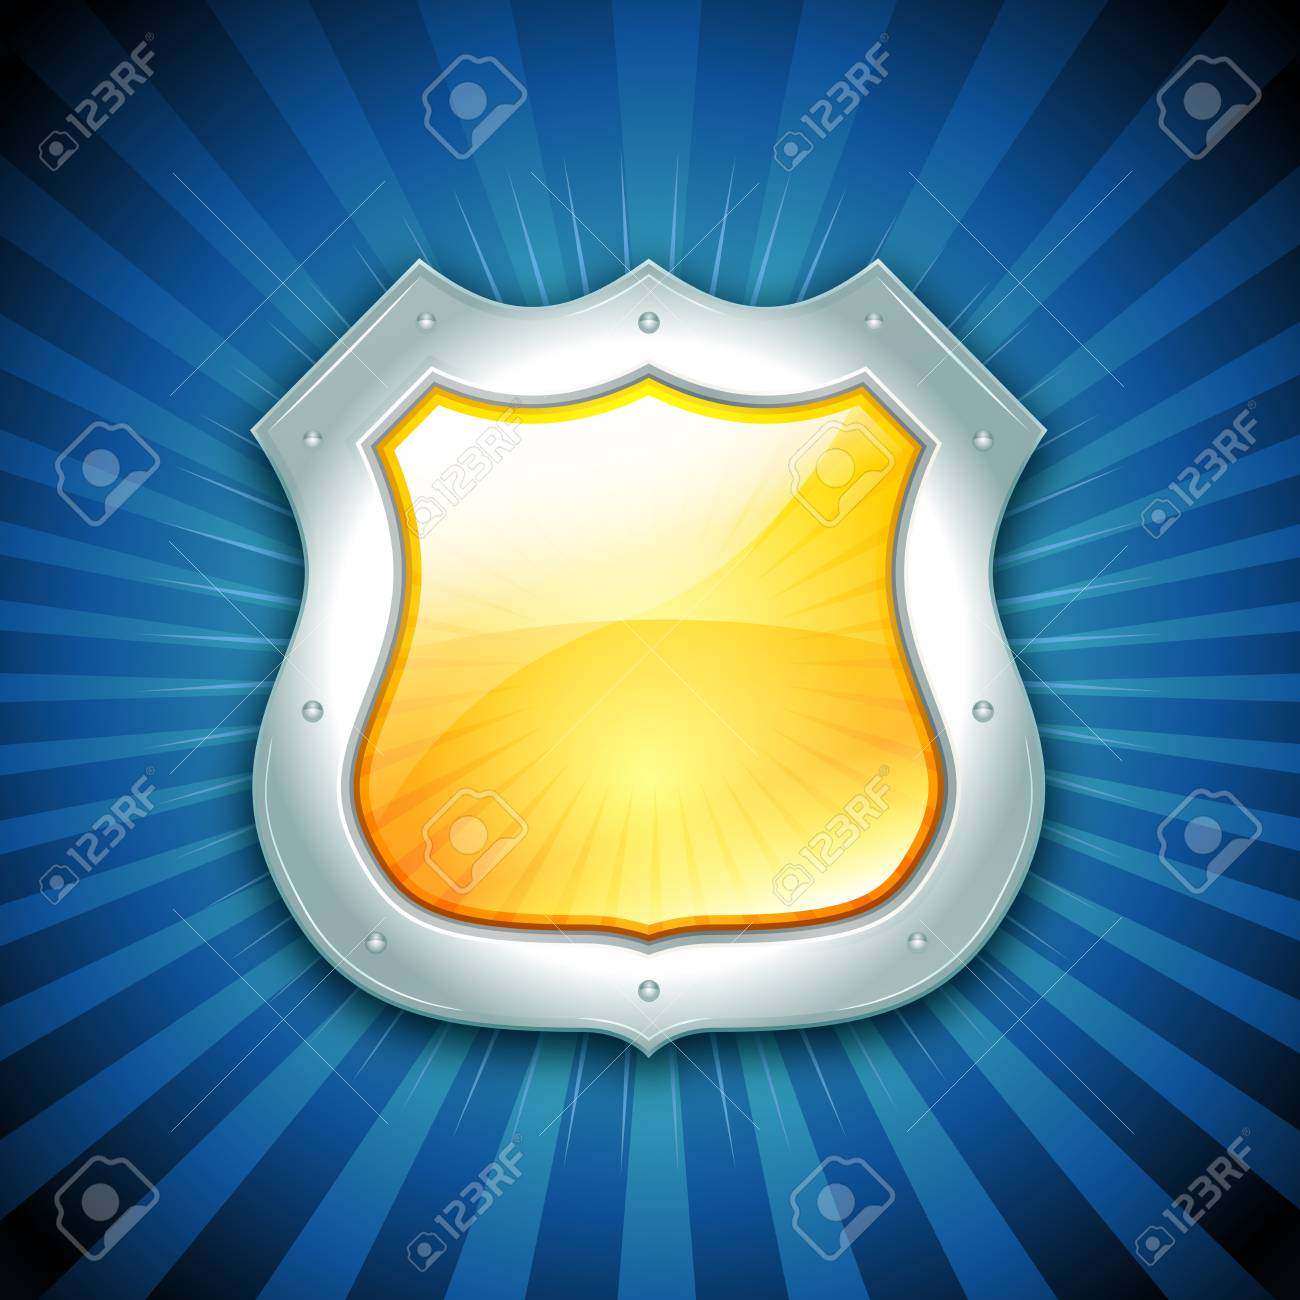 Illustration of a glossy security and protection icon with sunbeams background for guarantee symbols Stock Vector - 19874801